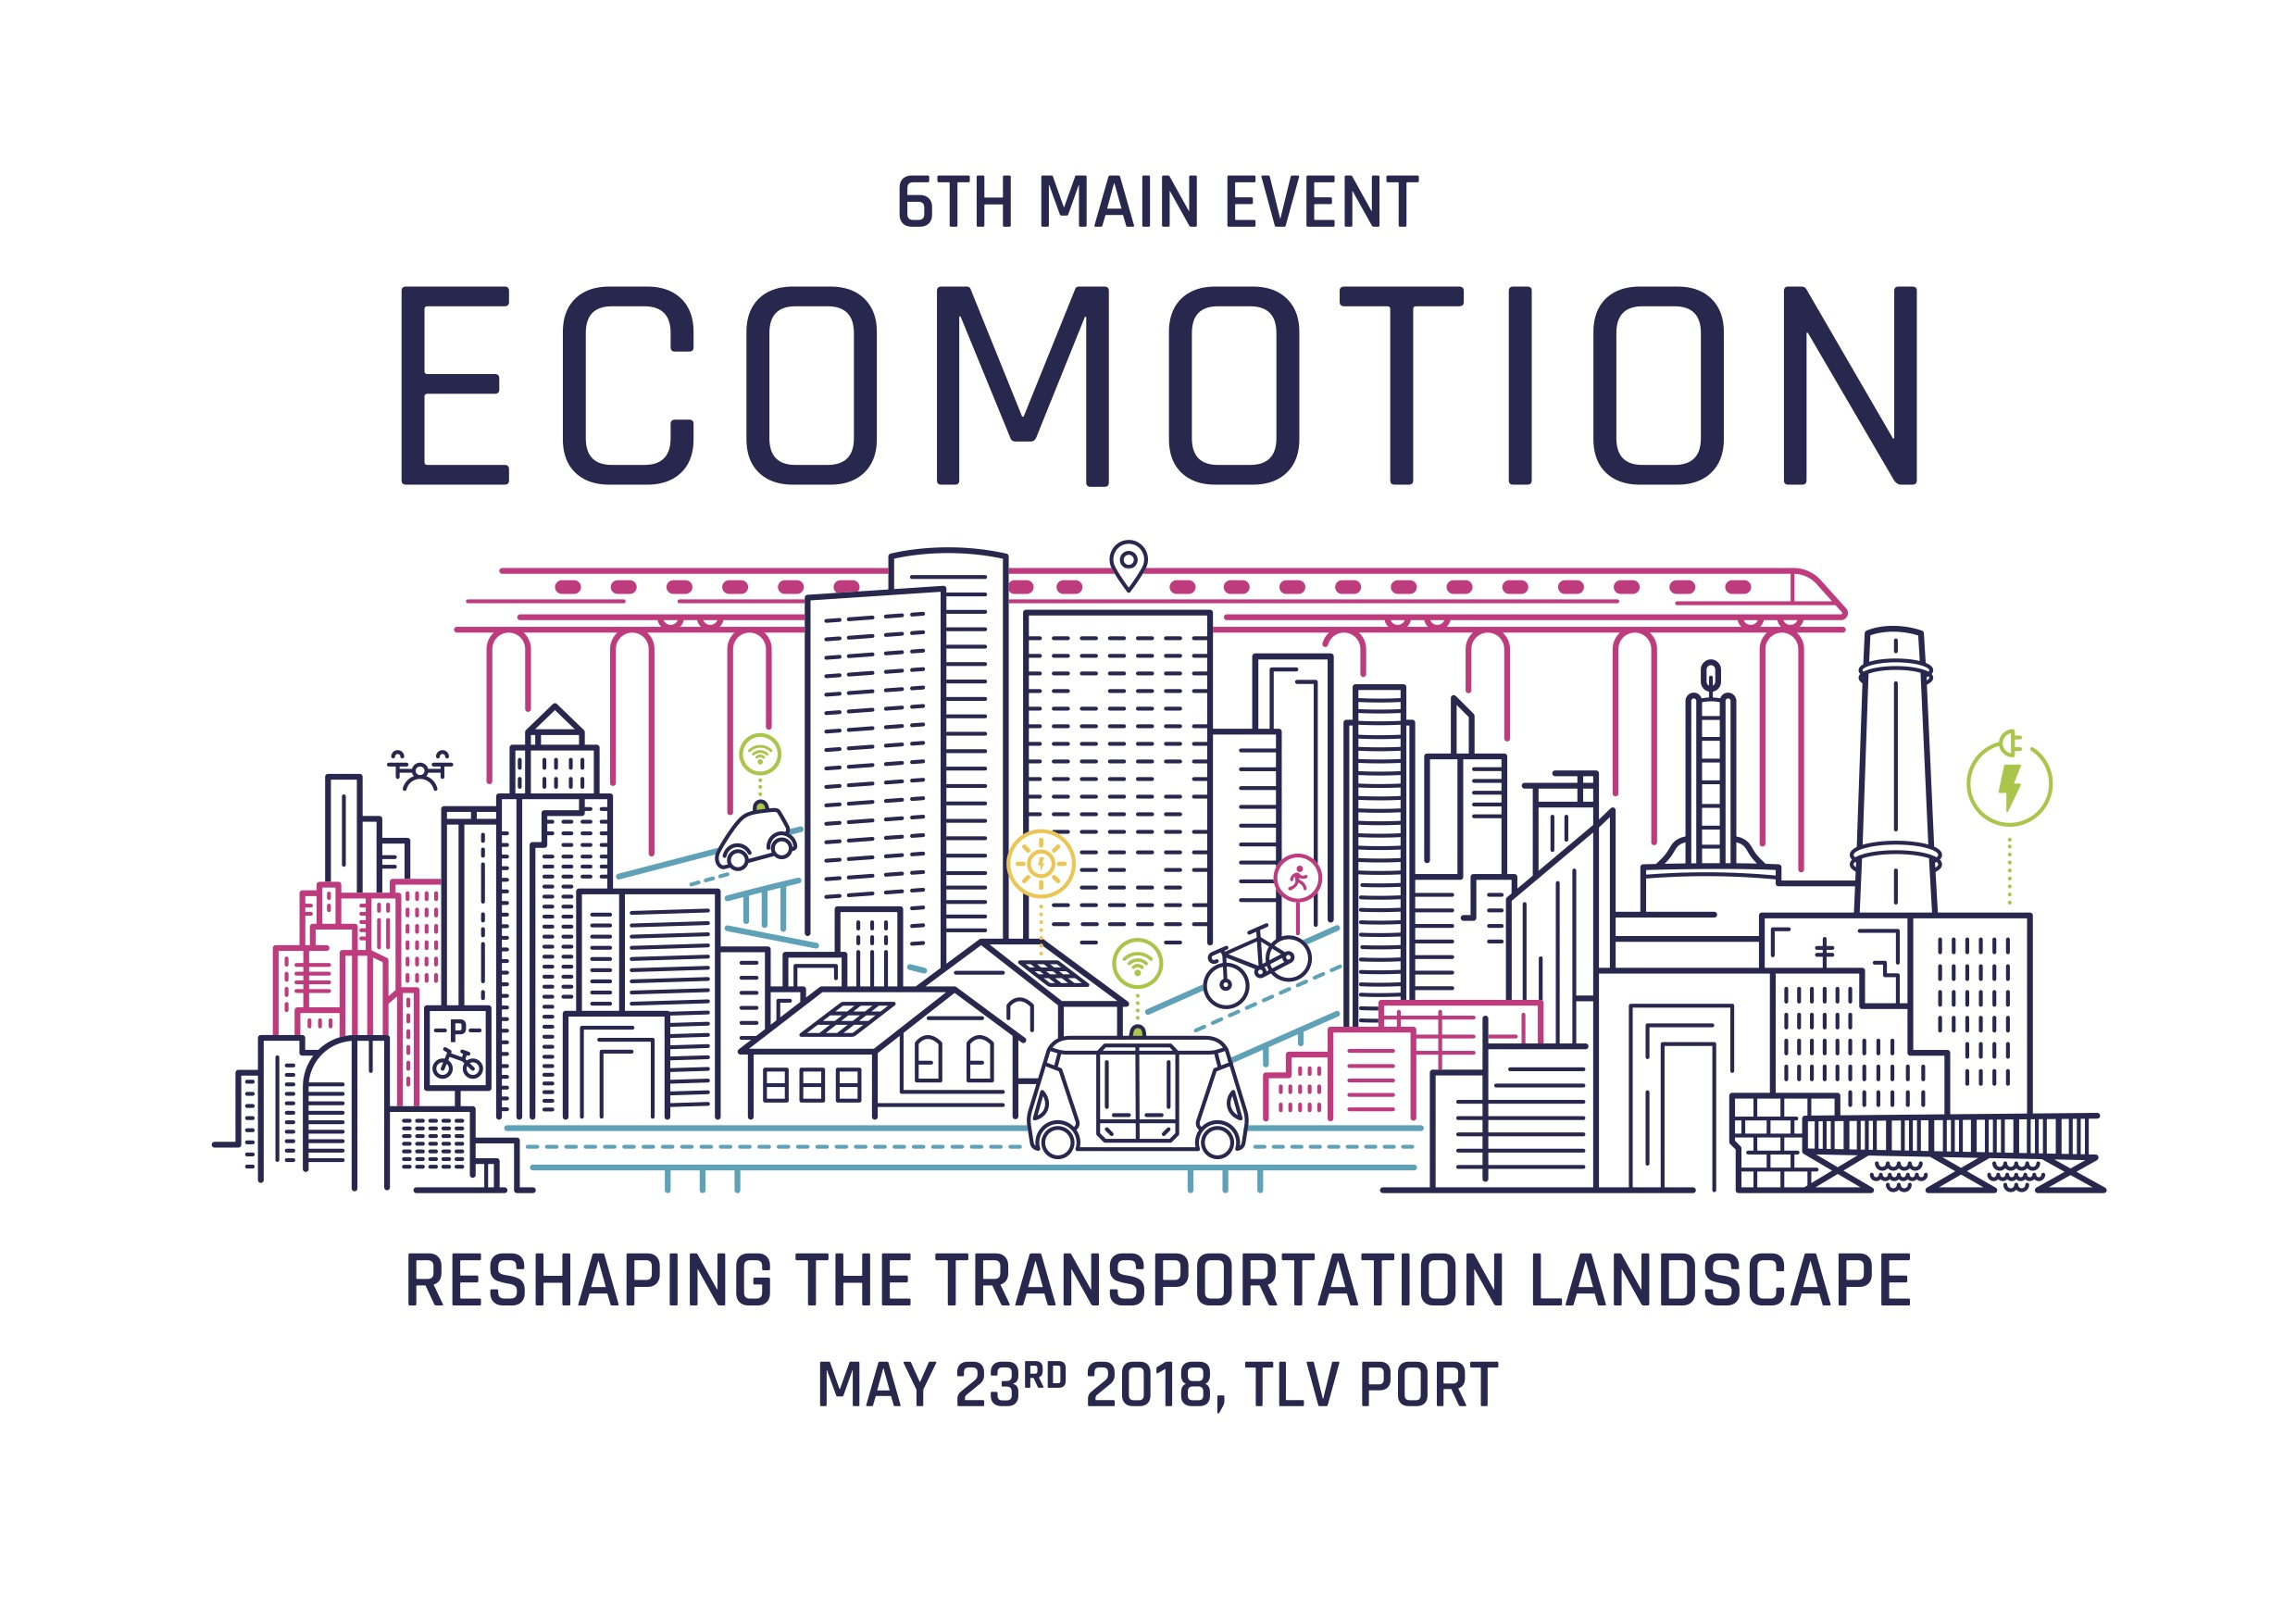 EcoMotion's 6th Main Event